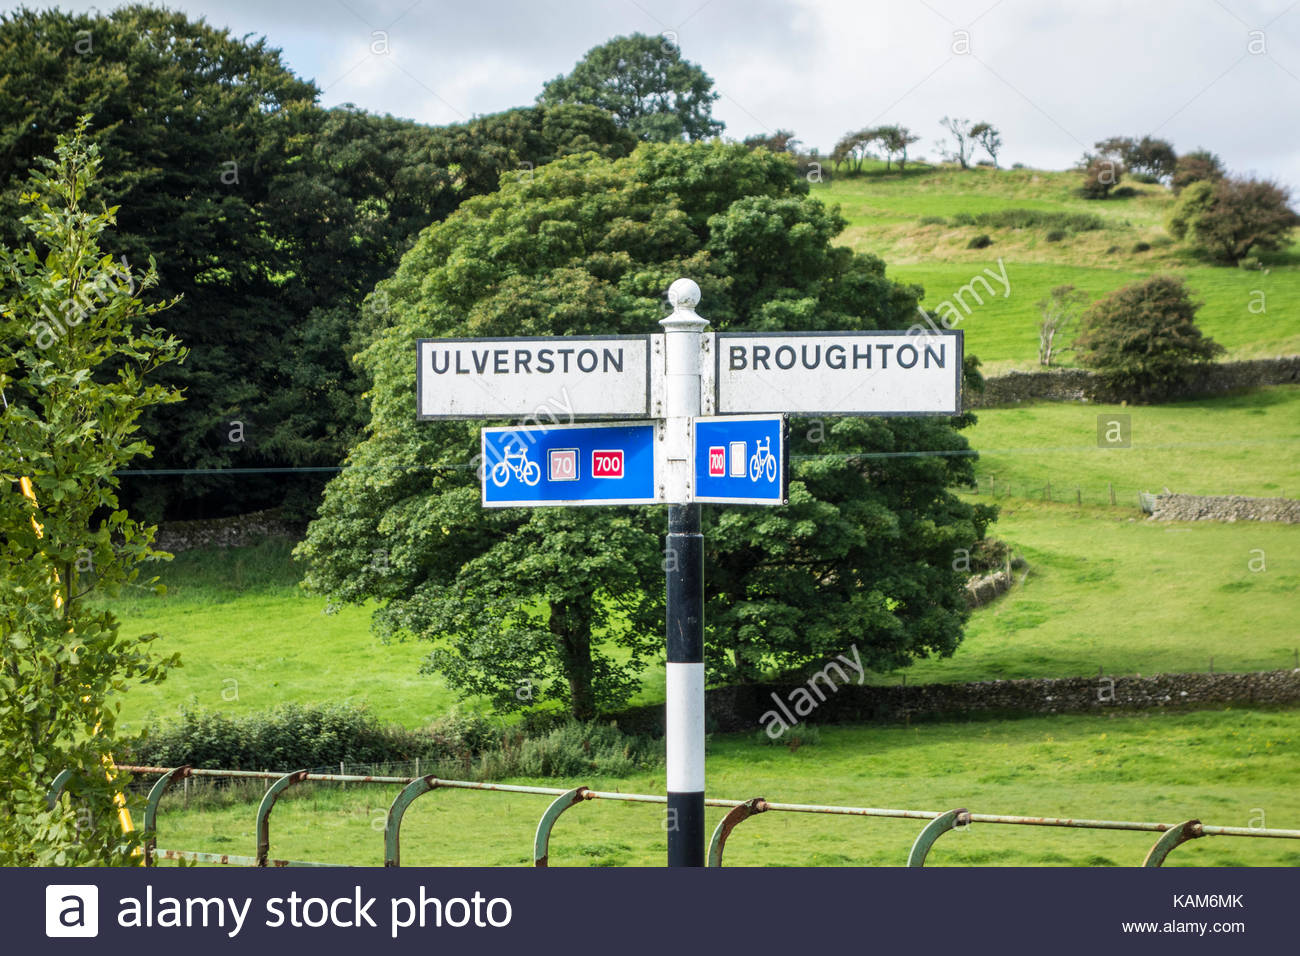 Sign post for Ulverston and Broughton on the Bay Cycleway and National Cycle Network routes 70 and 700 - Stock Image